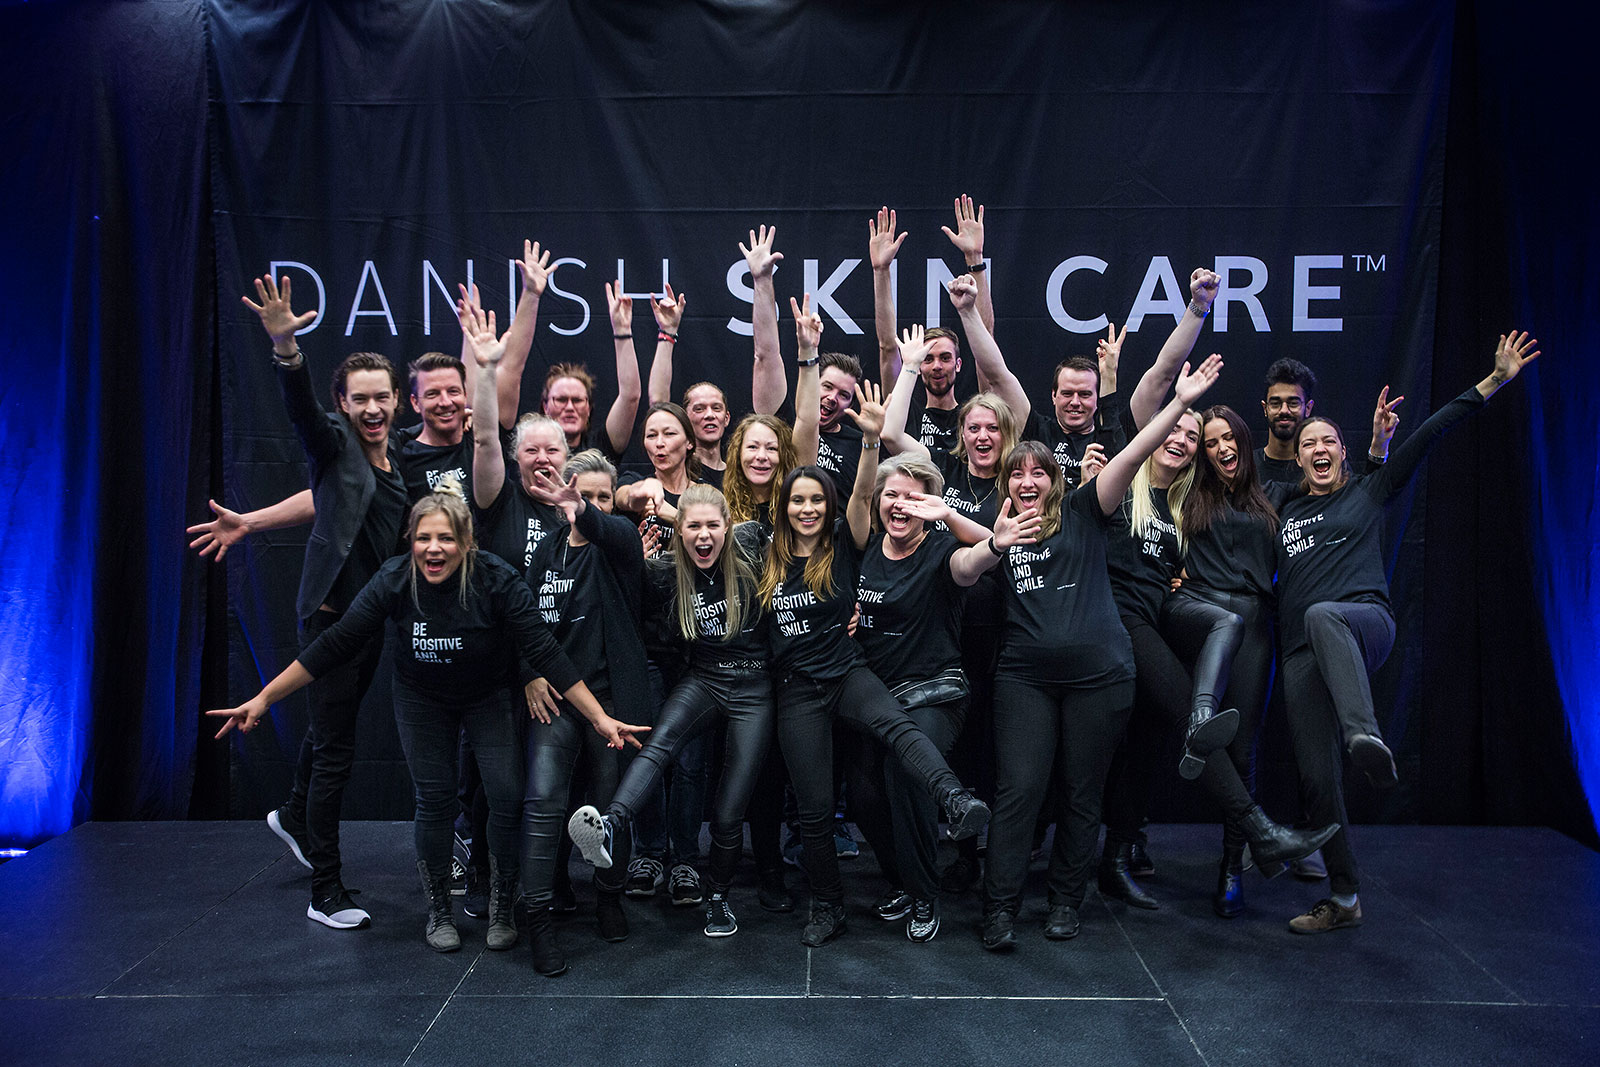 Team Danish Skin Care